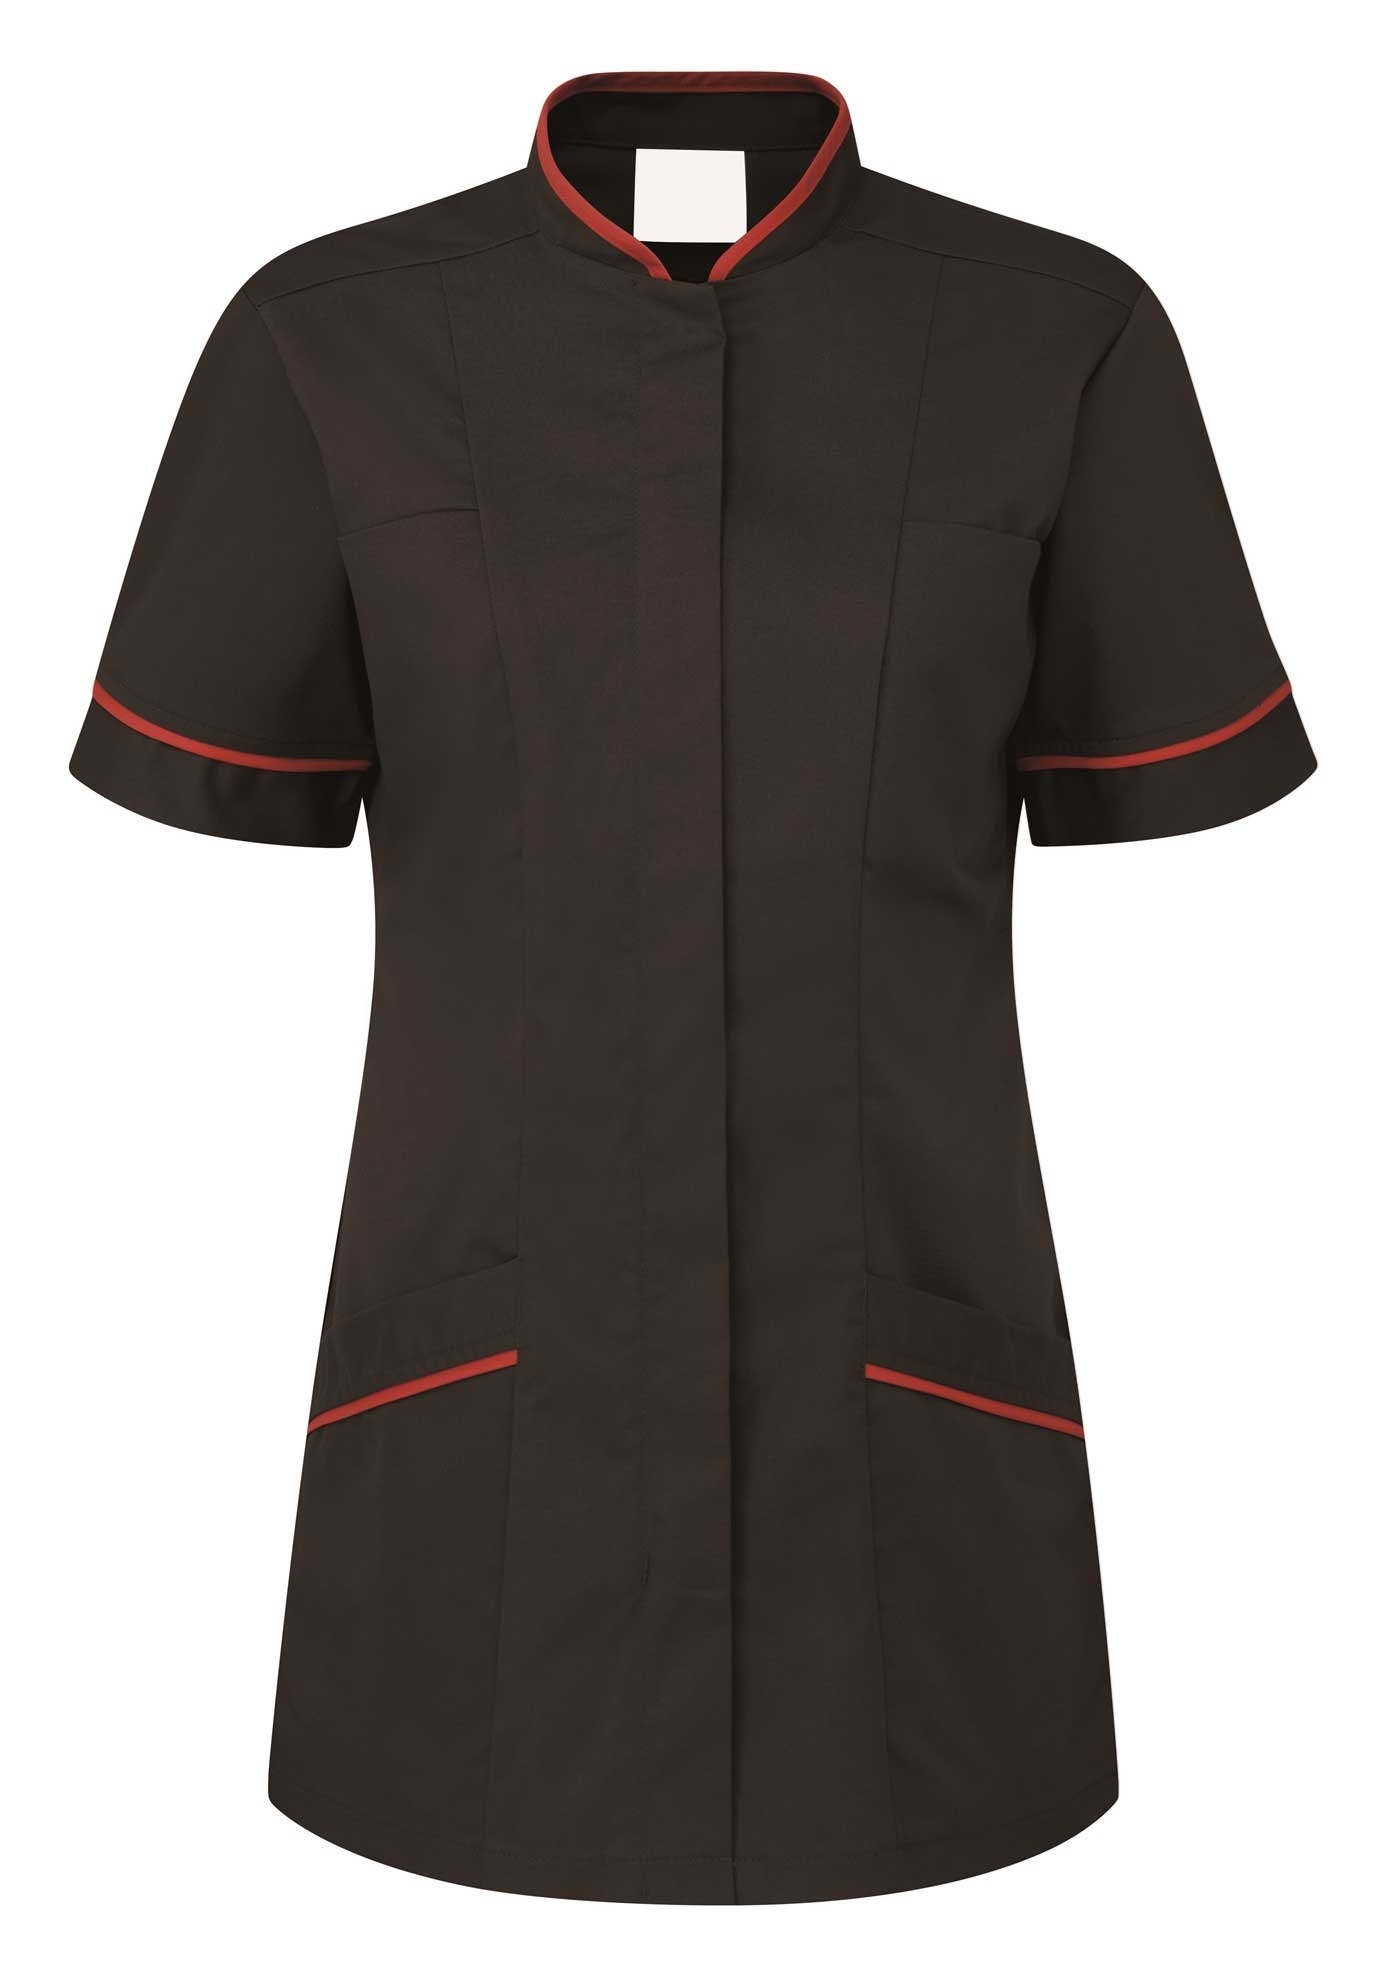 Picture of Professional Tunic - Black/Red